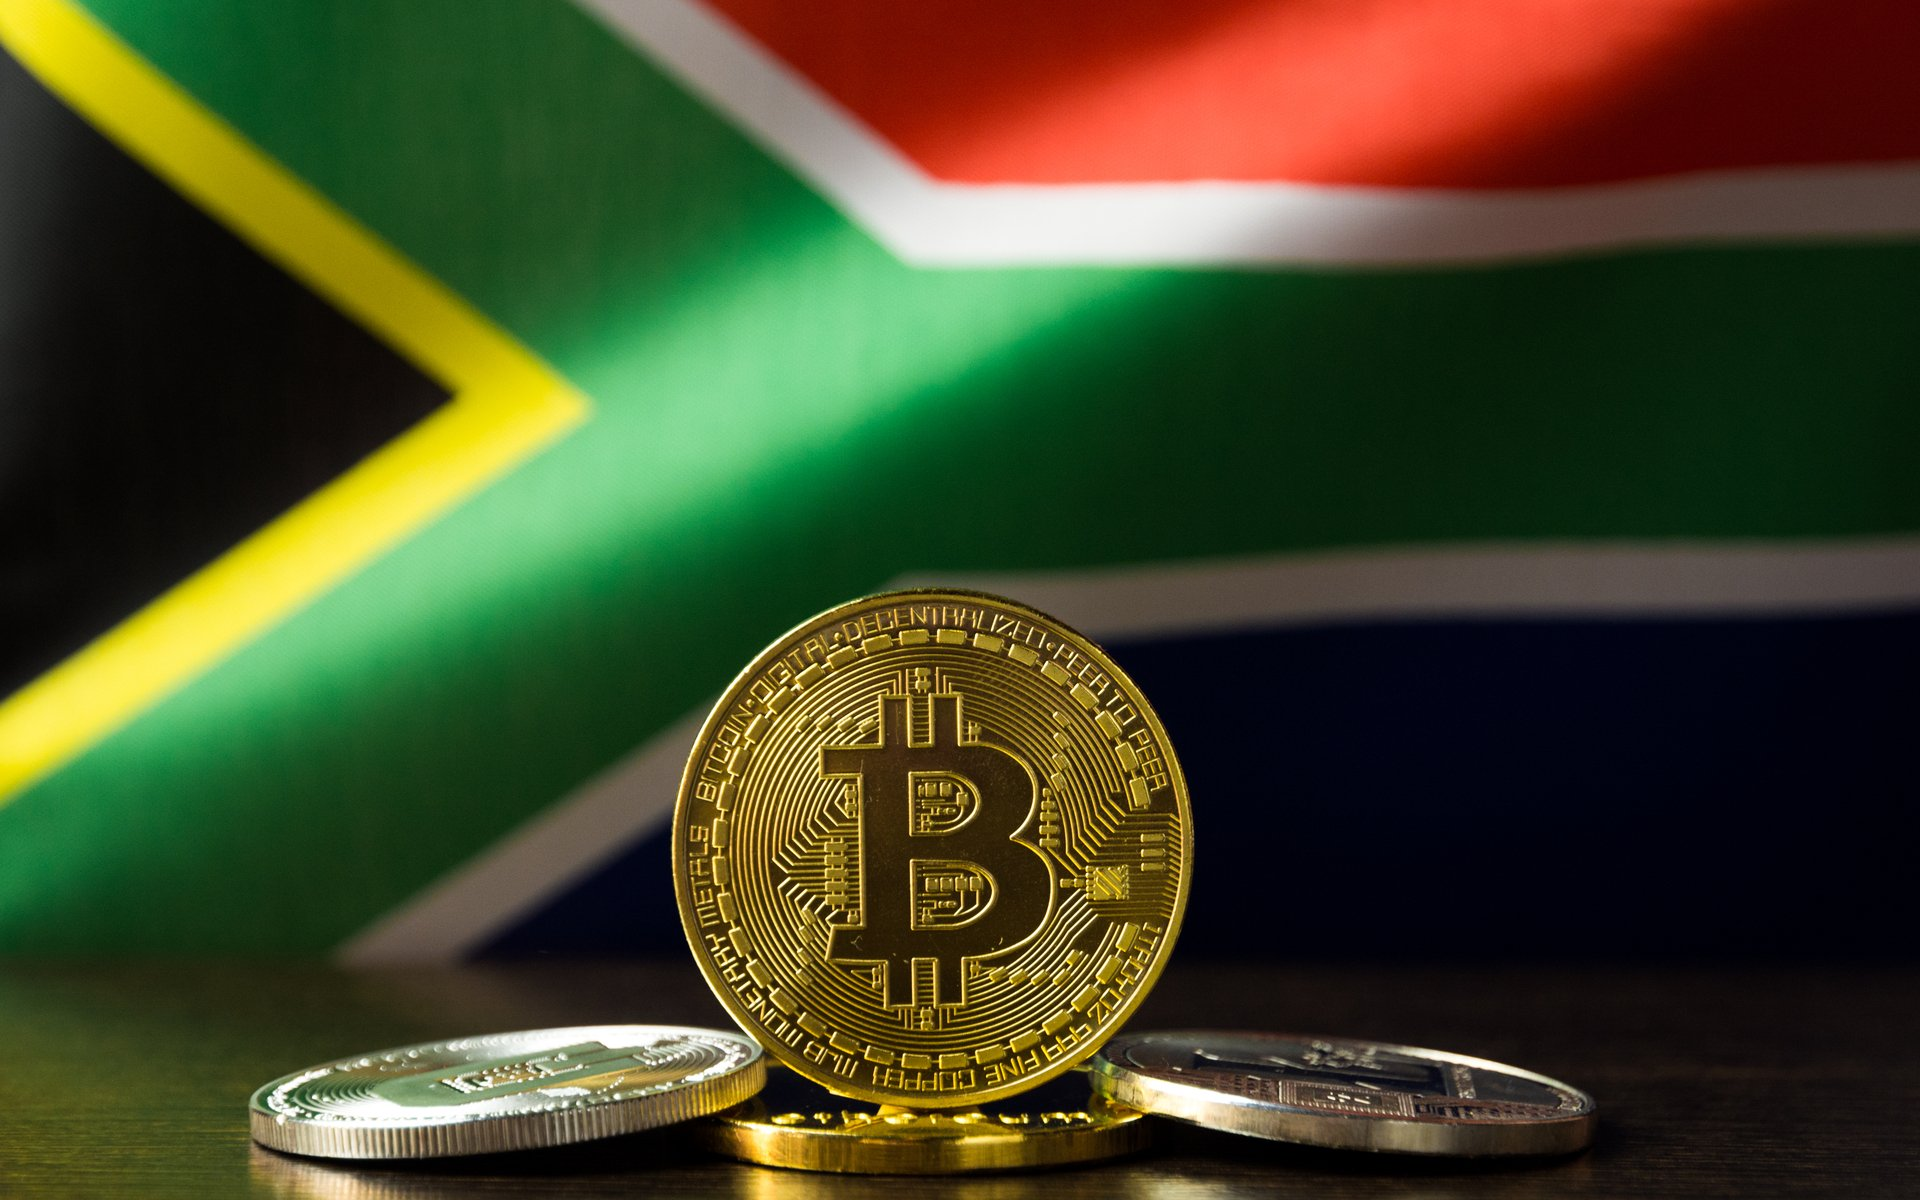 bitcoin in south africa | cryptocurrencies in south africa | cryptocurrency in south africa | south africa bitcoin luno | south africa cryptocurrencies luno